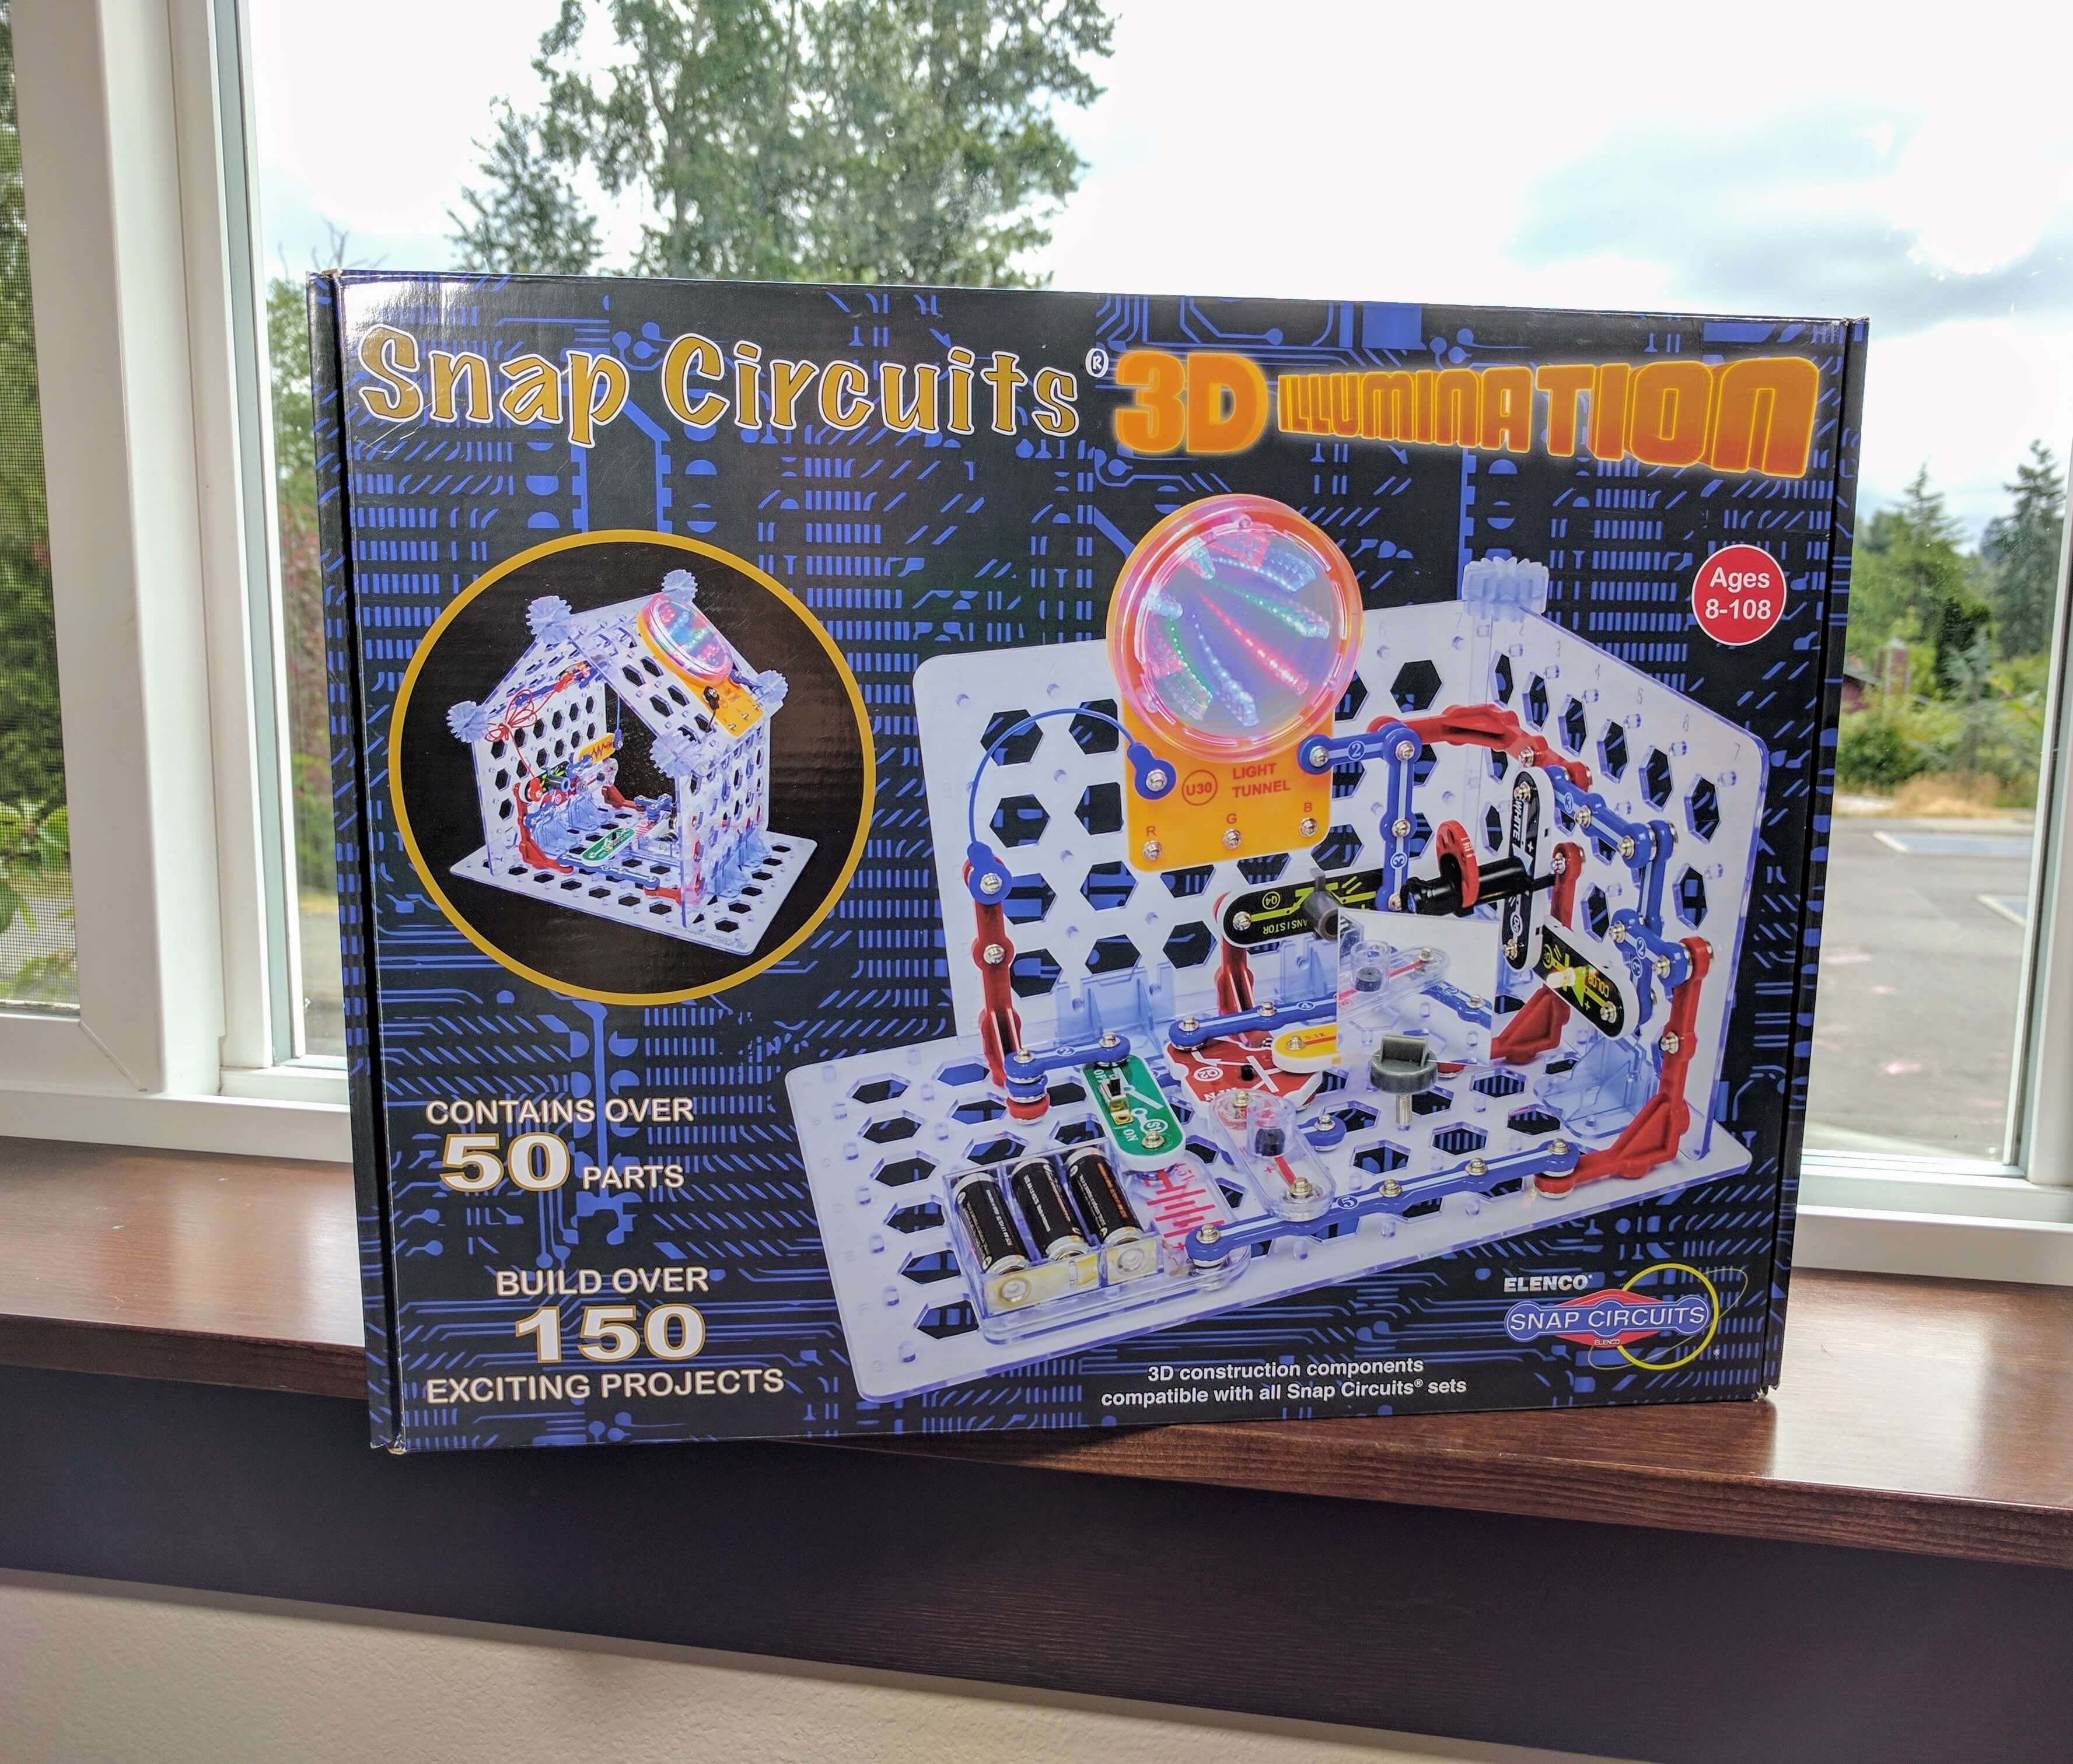 Snap Circuits 3d Meg Electronics Discovery Kit Holiday Gifts Parts